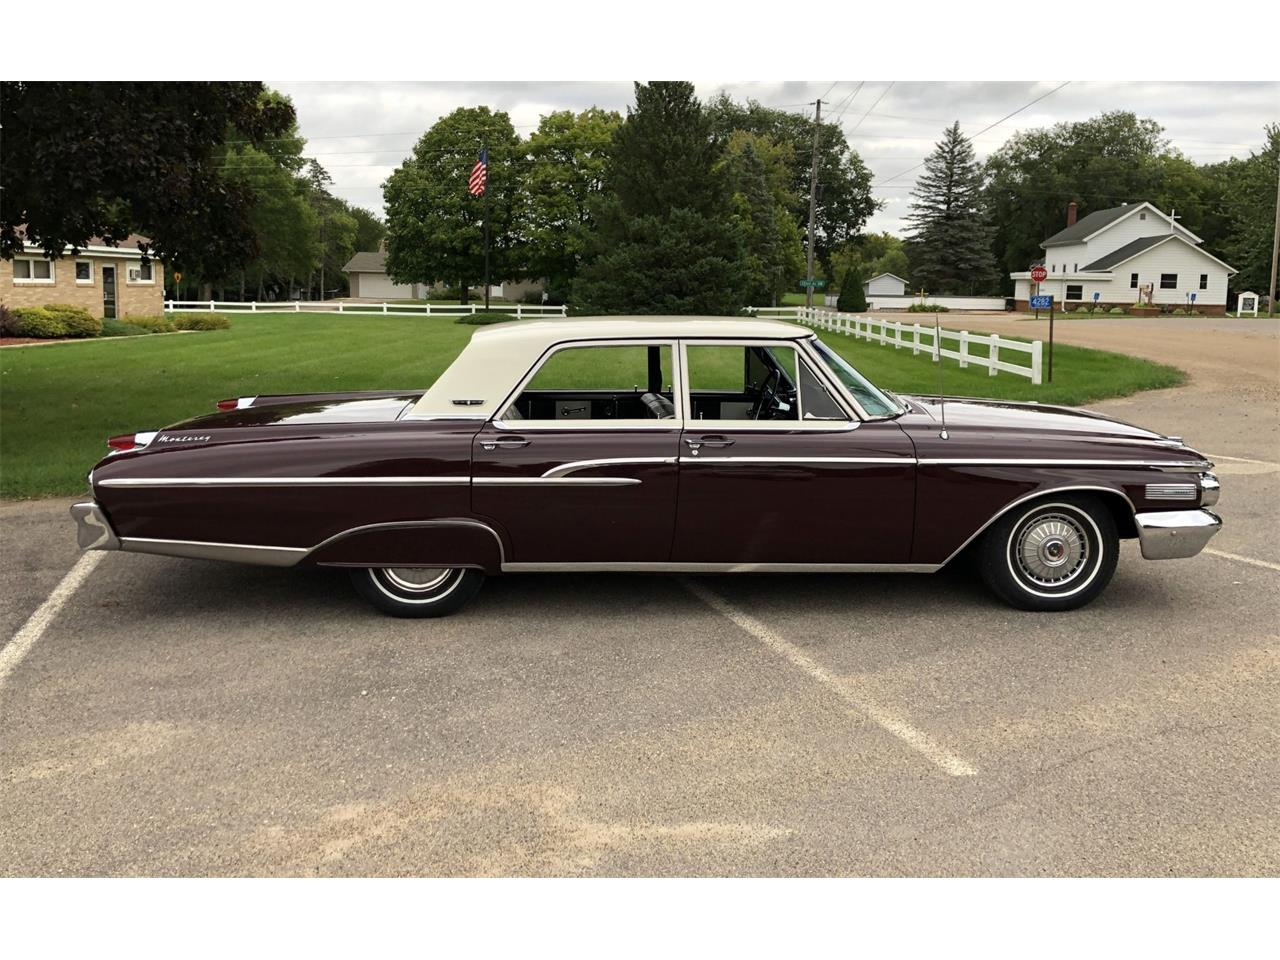 1962 Mercury Monterey (CC-1261084) for sale in Maple Lake, Minnesota